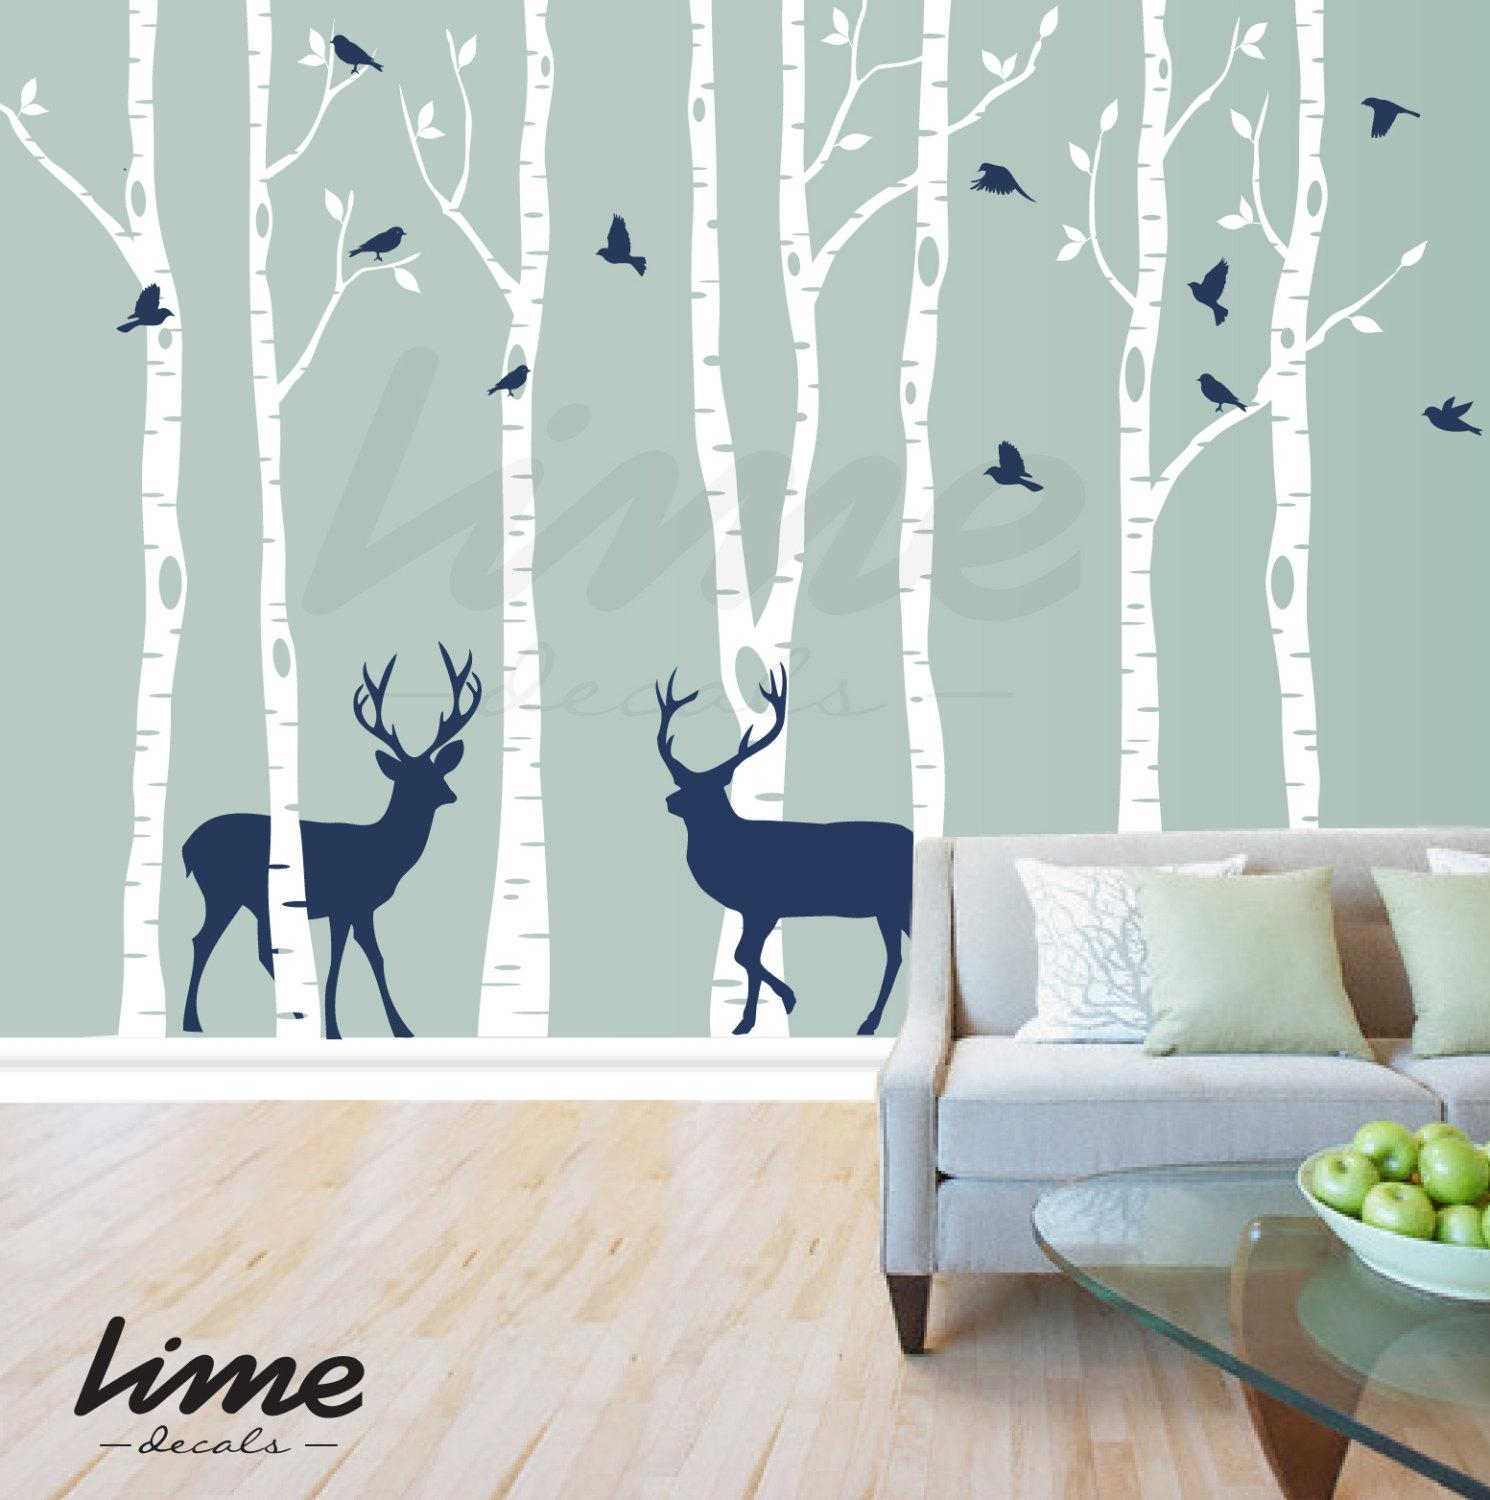 Birch Tree Deer Wall Pictures Of Photo Albums Birch Tree Wall Pertaining To Wall Art Deco Decals (Image 1 of 20)